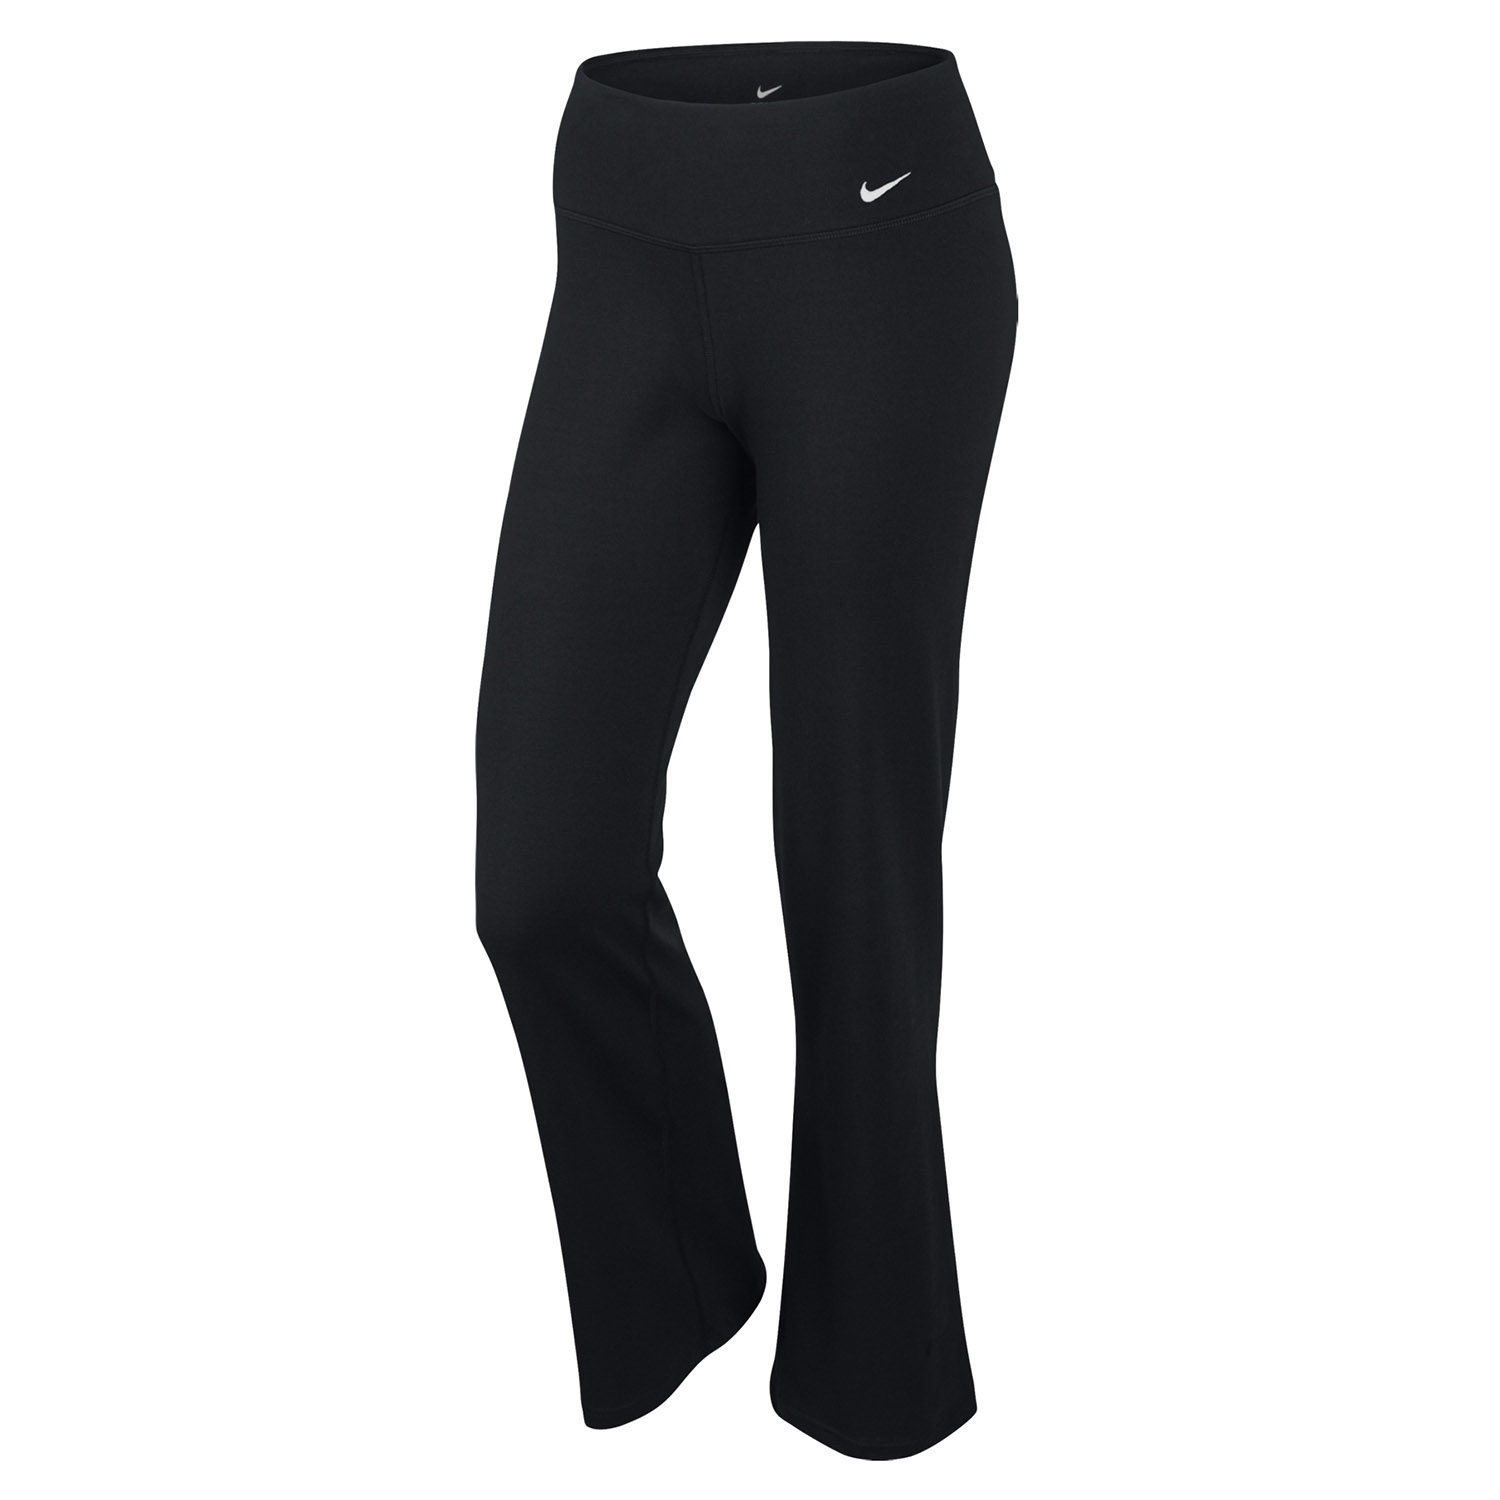 New Nike Academy Drifit Training Pants In Black  Lyst